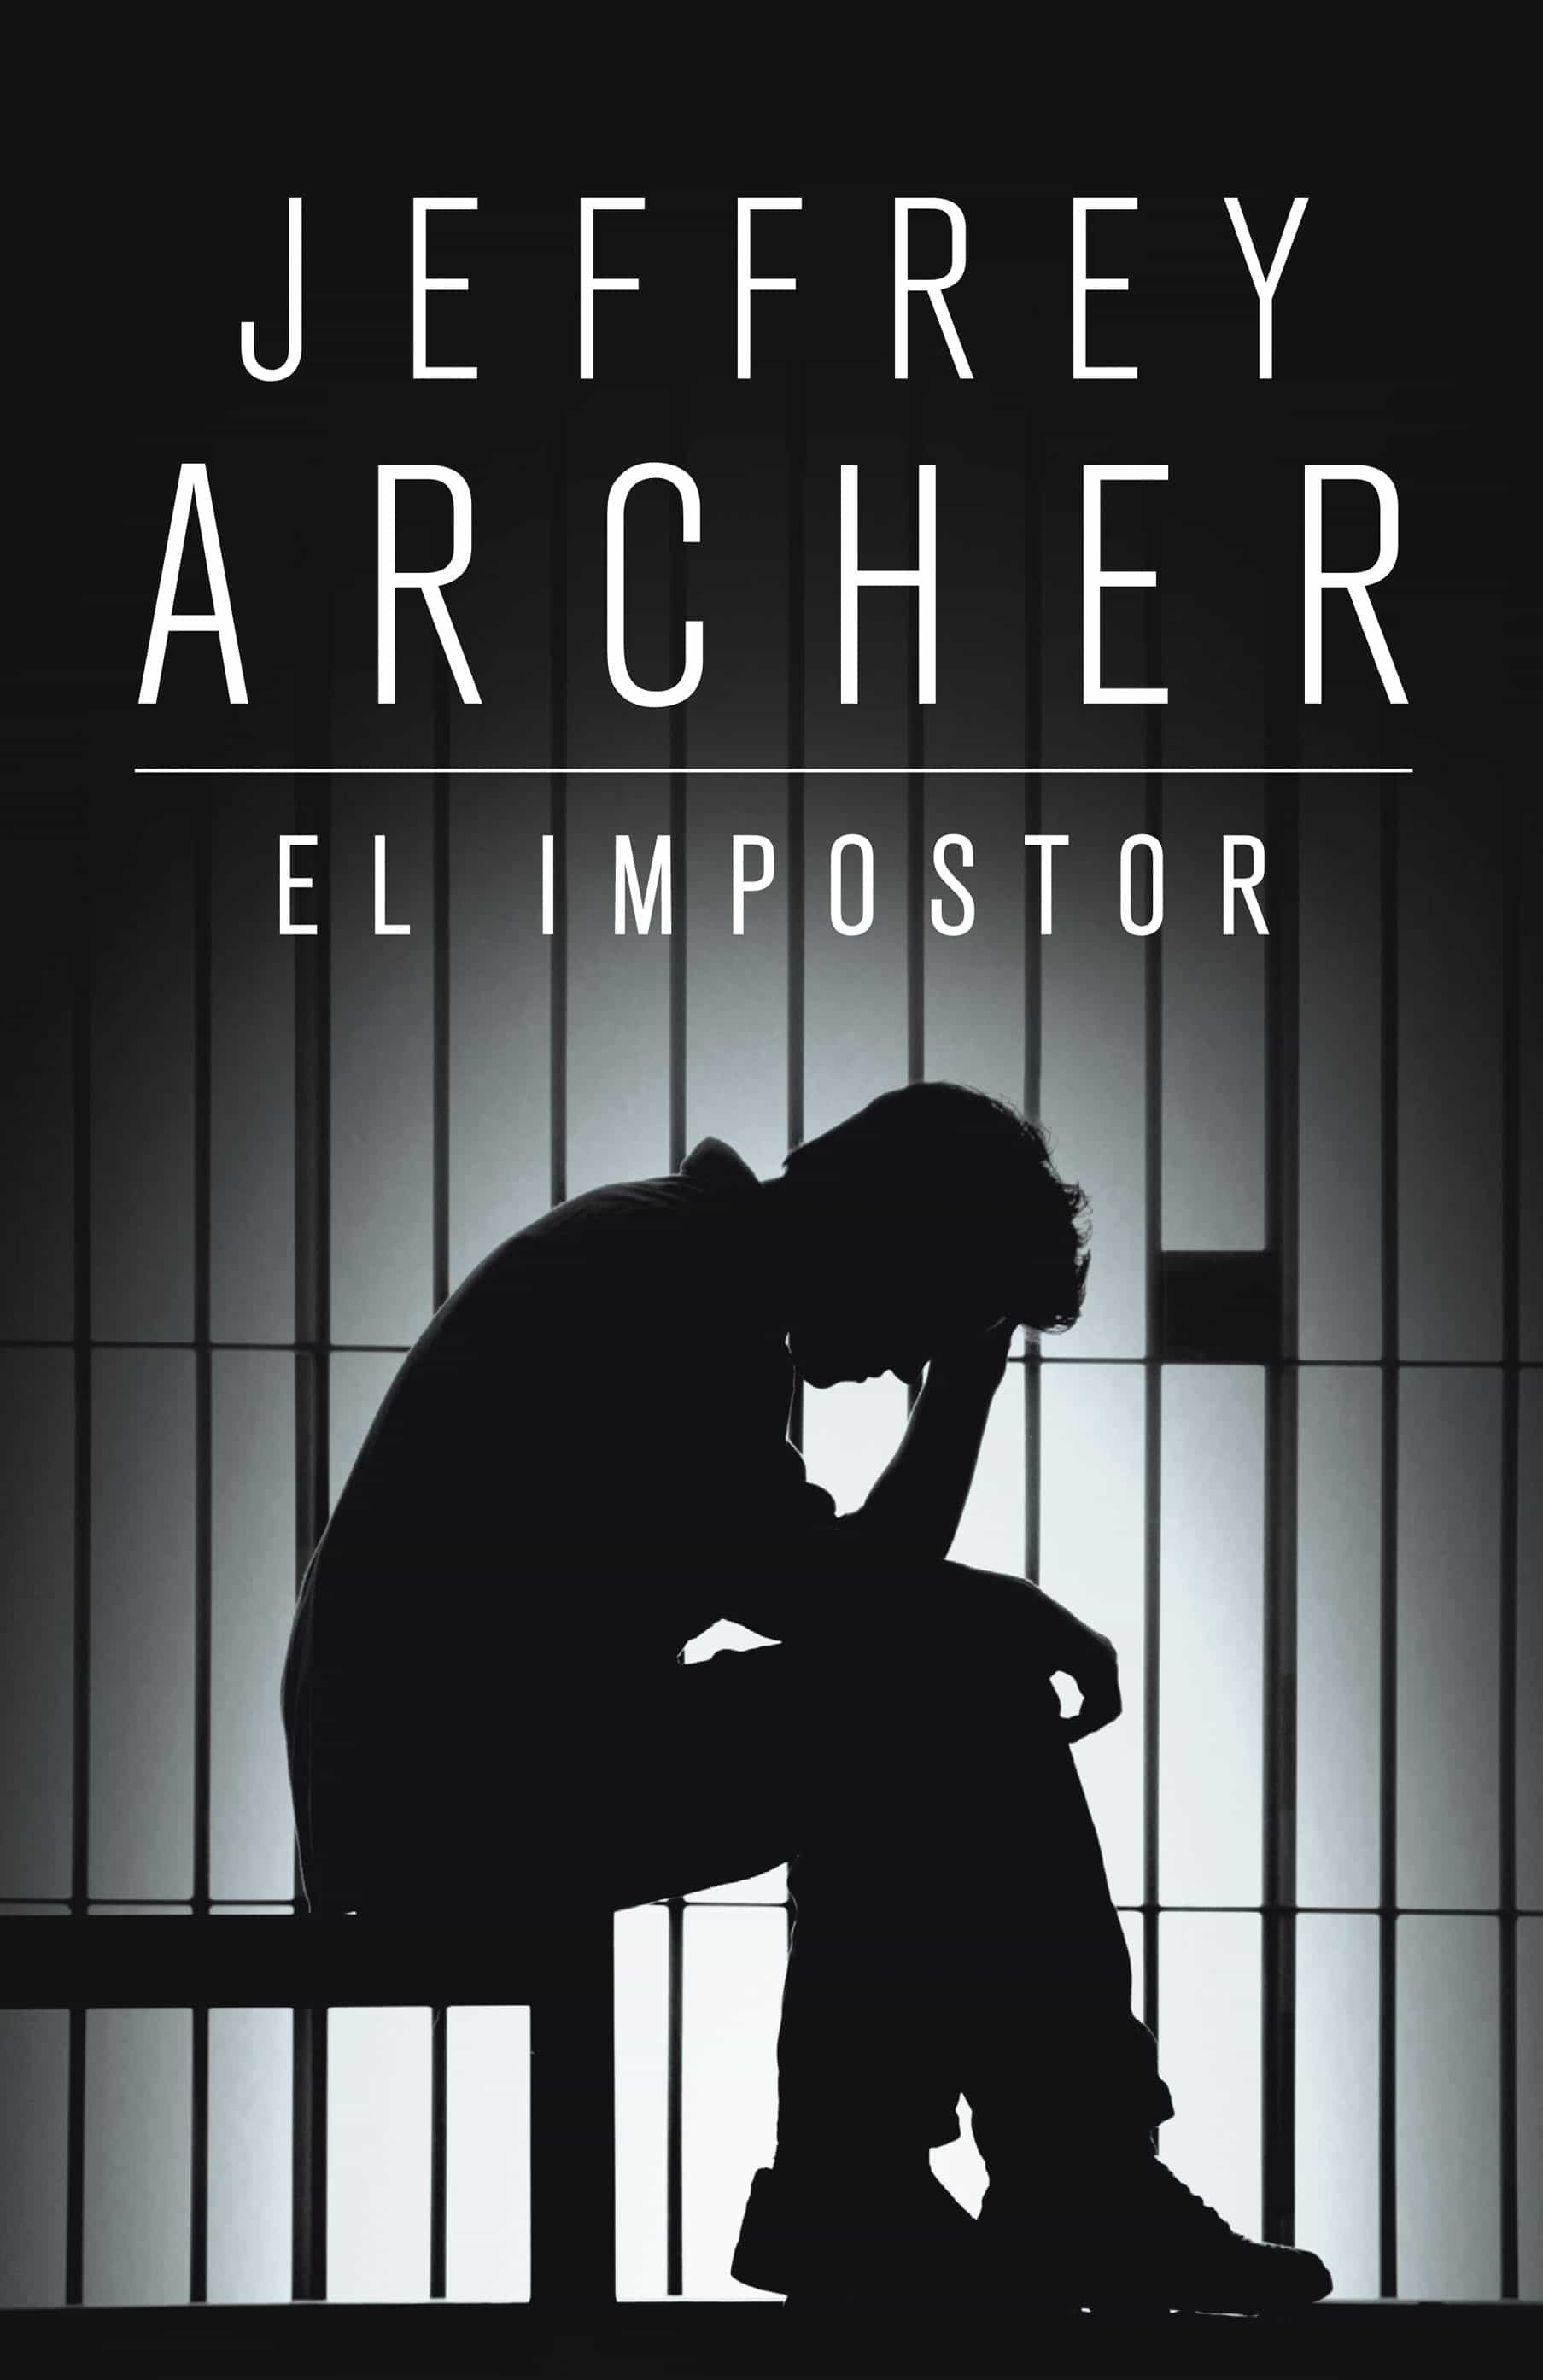 Jeffrey Archer Libros El Impostor Ebook Jeffrey Archer Descargar Libro Pdf O Epub 9788425344893